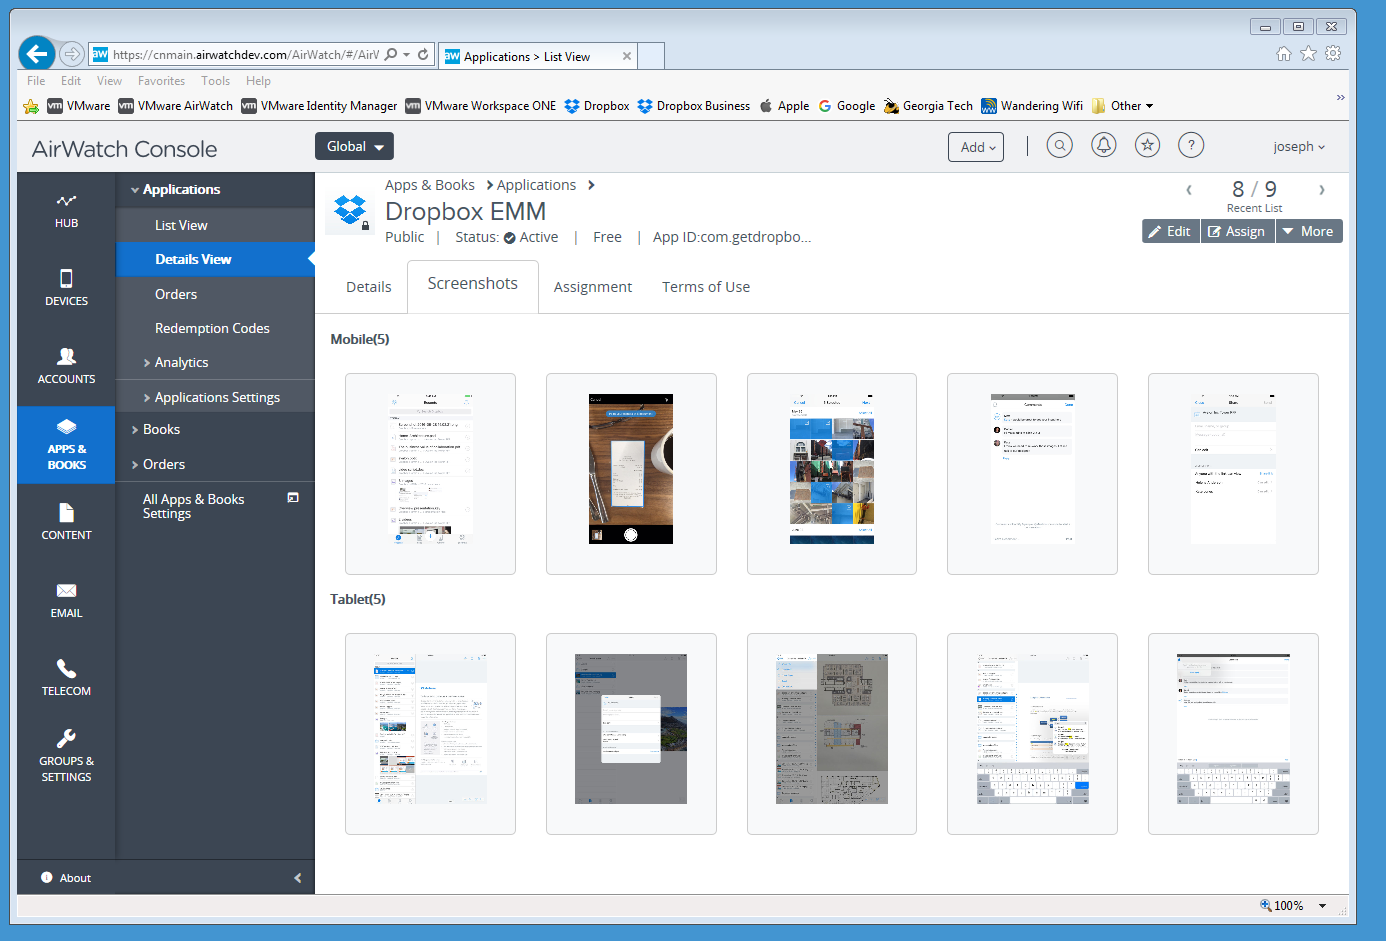 Dropbox EMM screenshots view